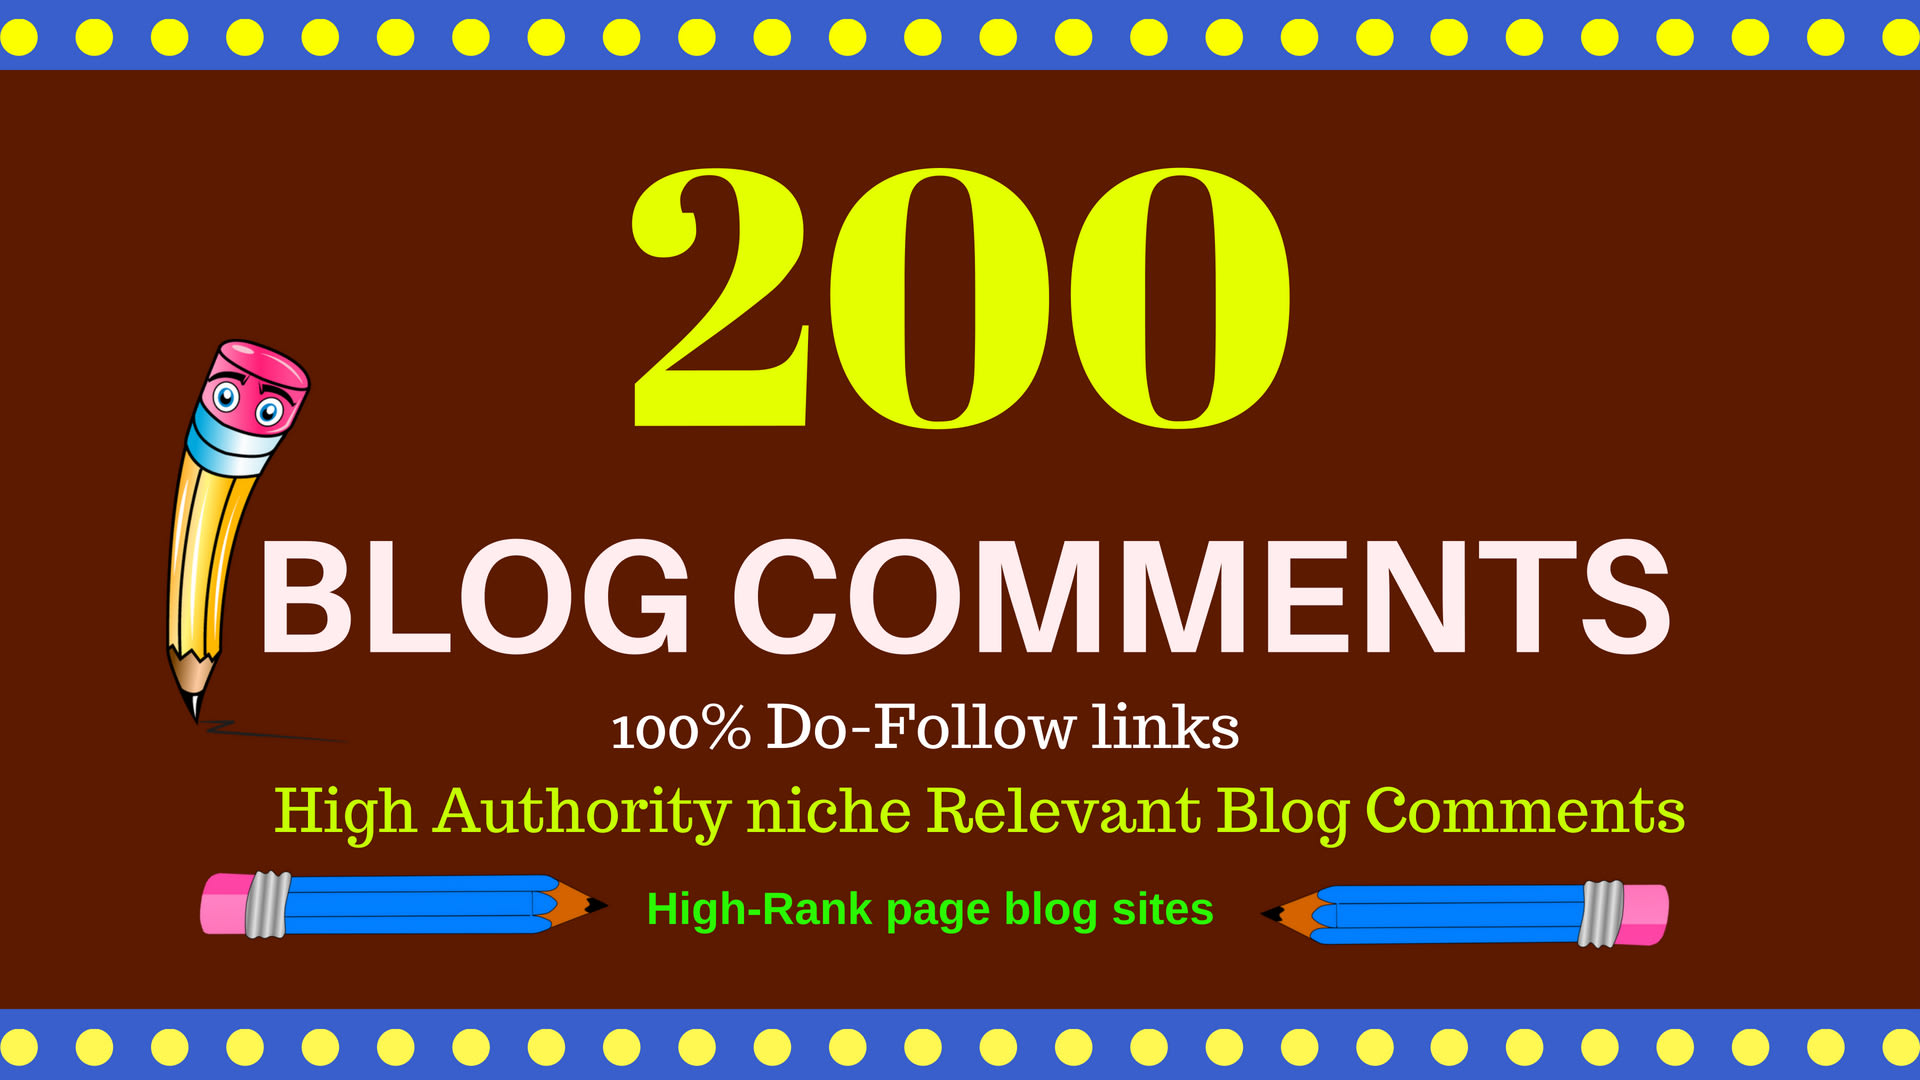 create 200 high quality blog comments backlinks unique domain,  for boost website